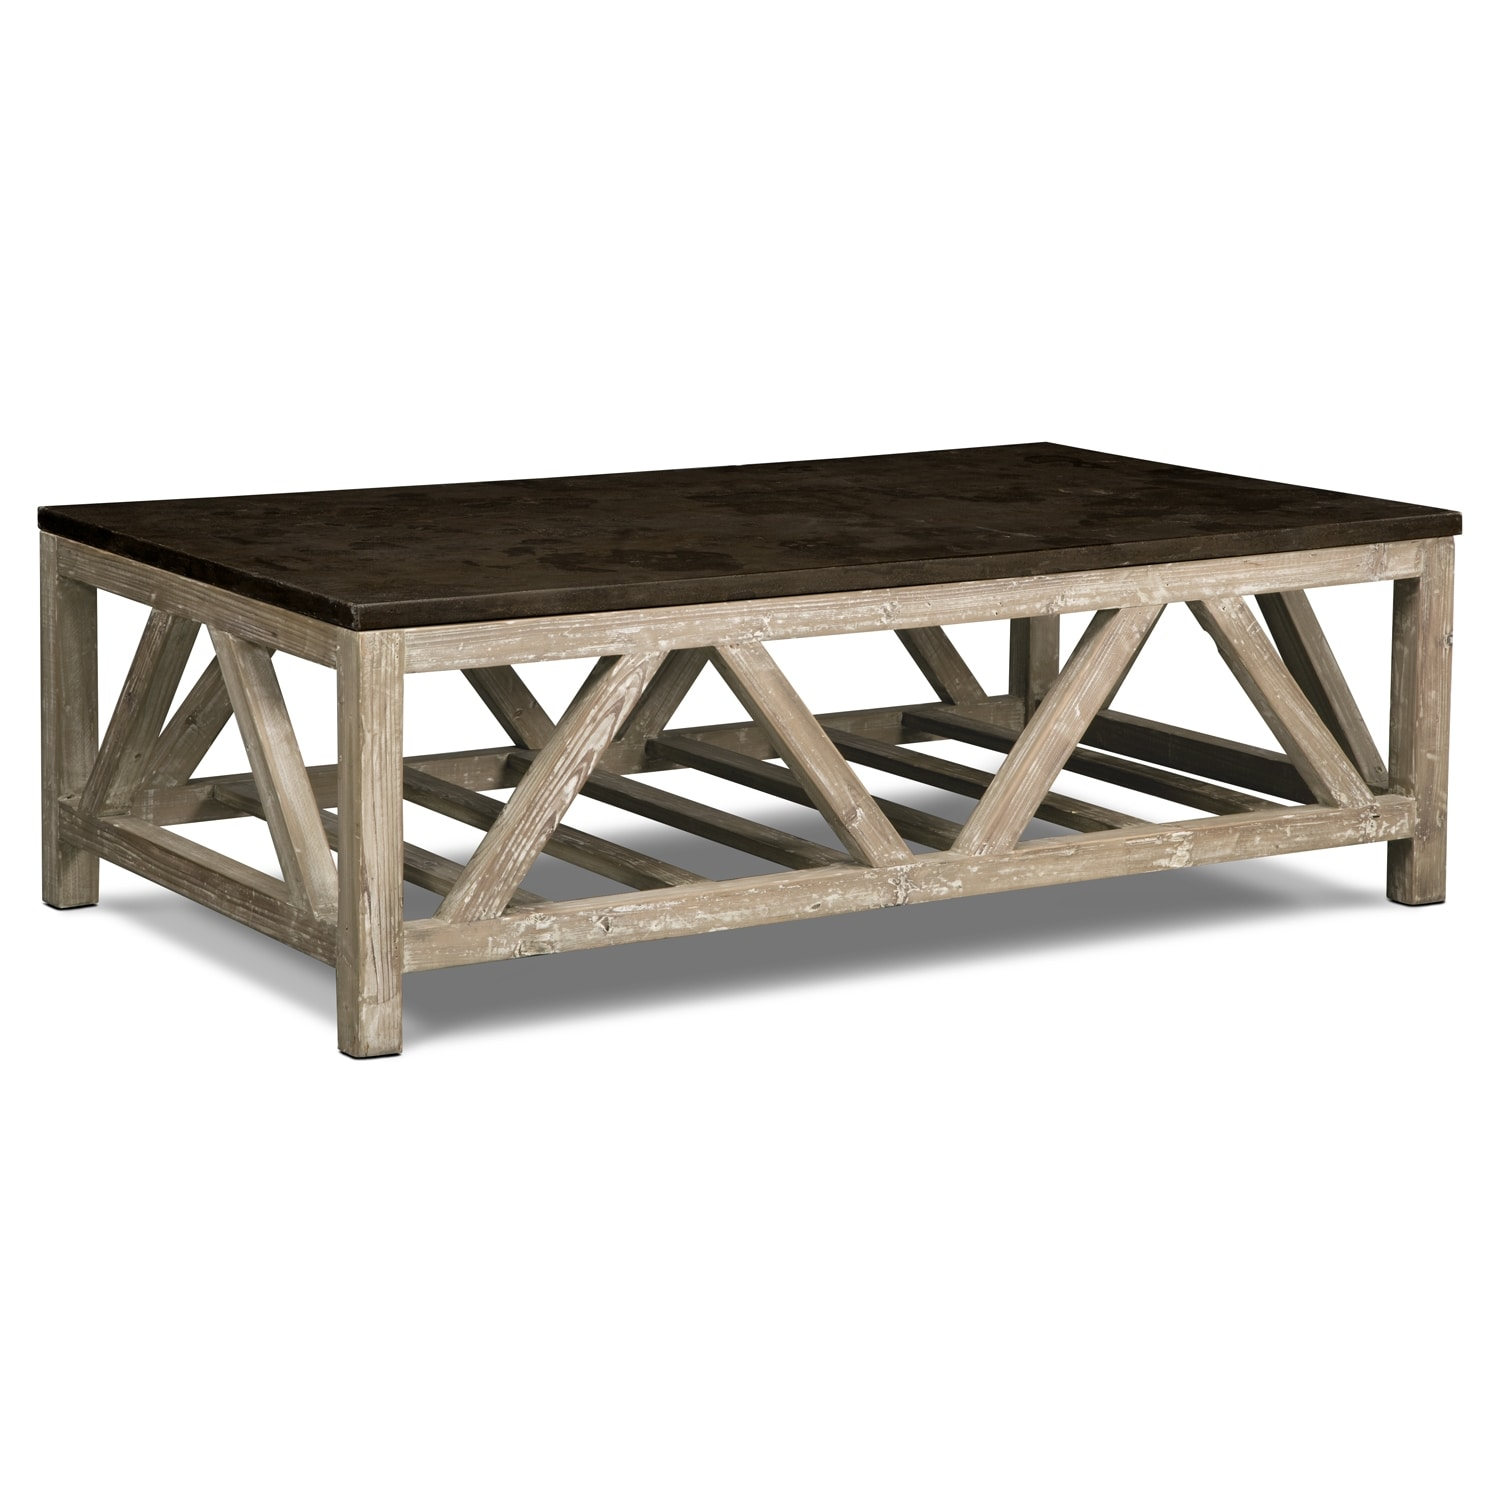 Excellent Hexagonal Coffee Table 50 Hexagonal Coffee Table Wood